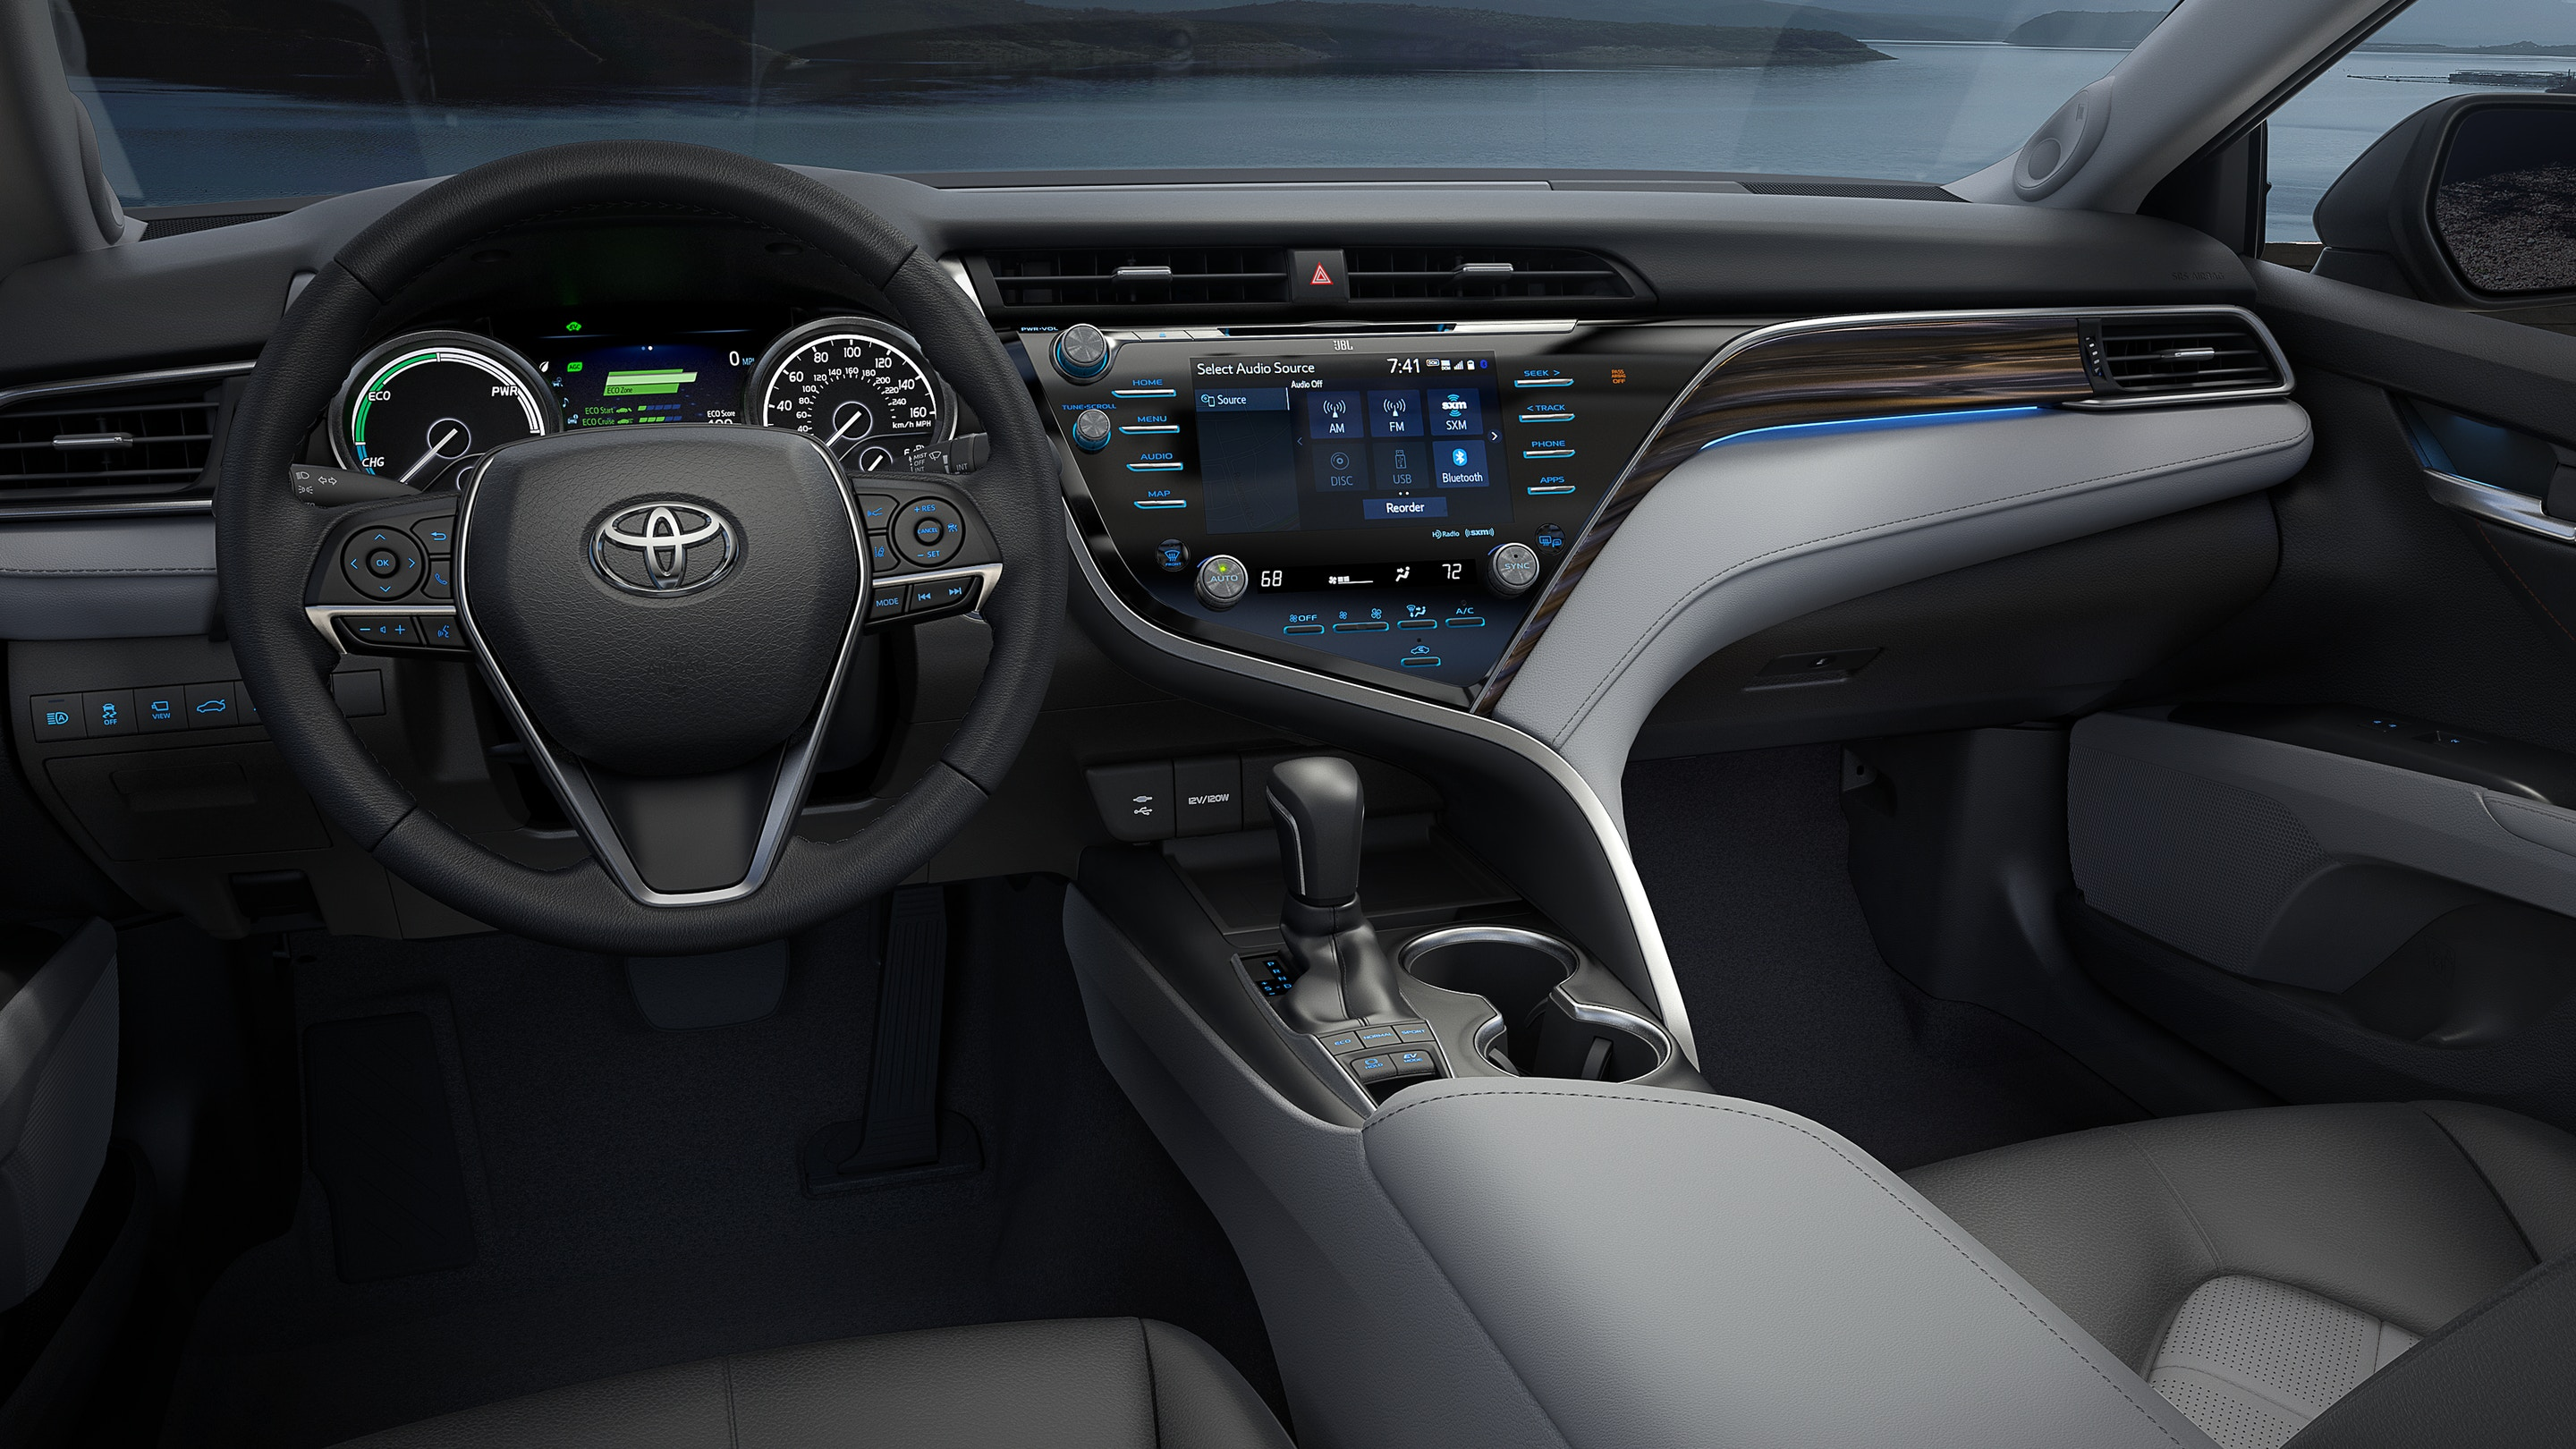 2020 Toyota Camry Center Stack